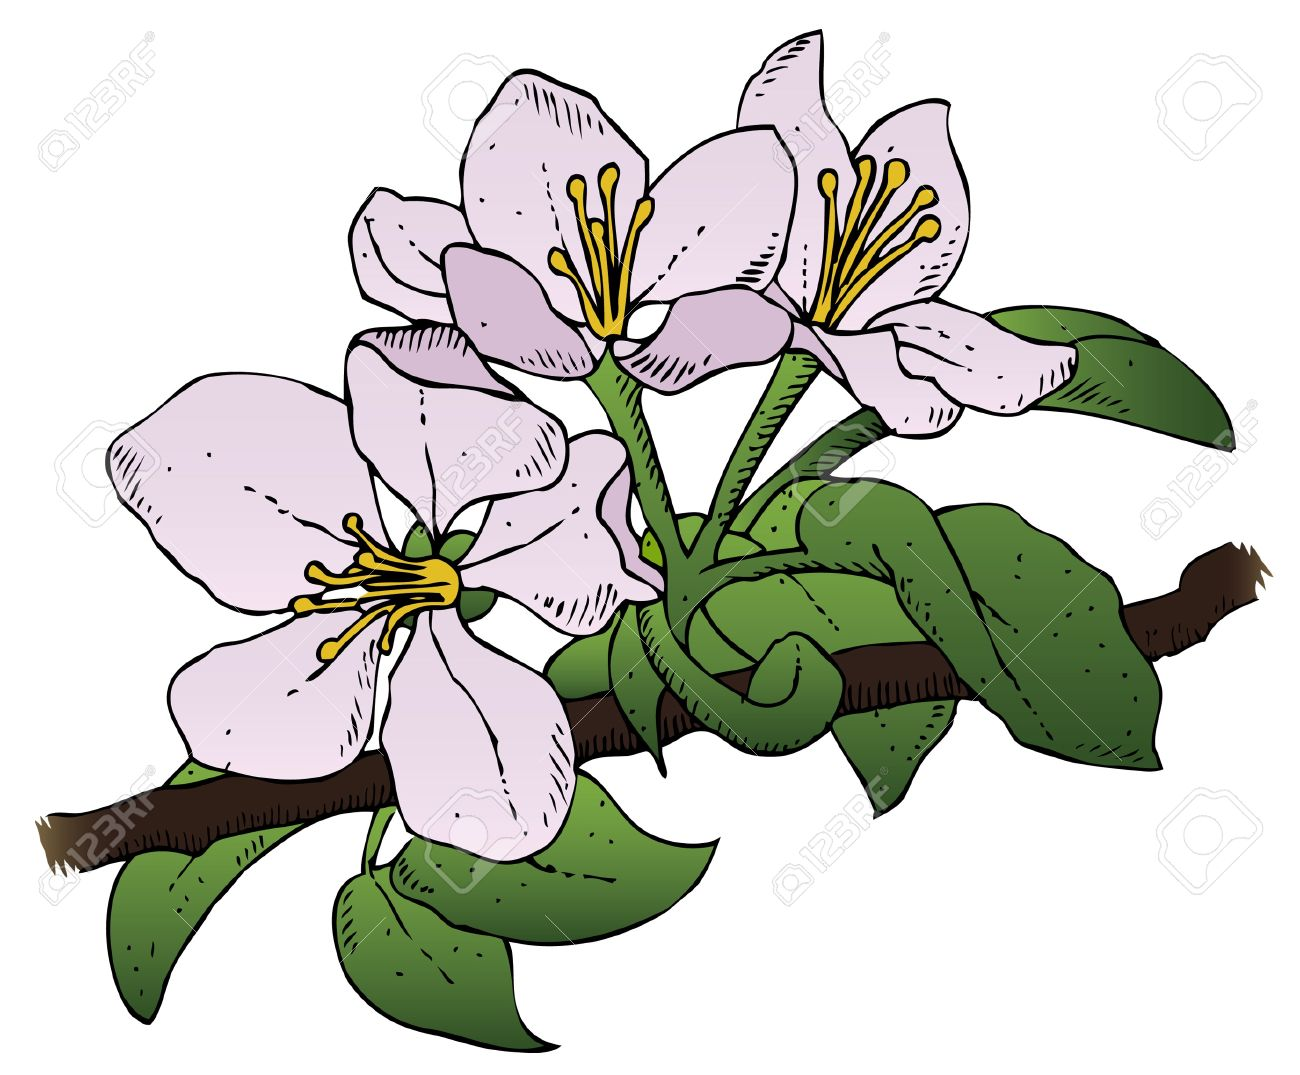 A Realistic Drawing Of A Group Of Apple Blossoms On A Branch.